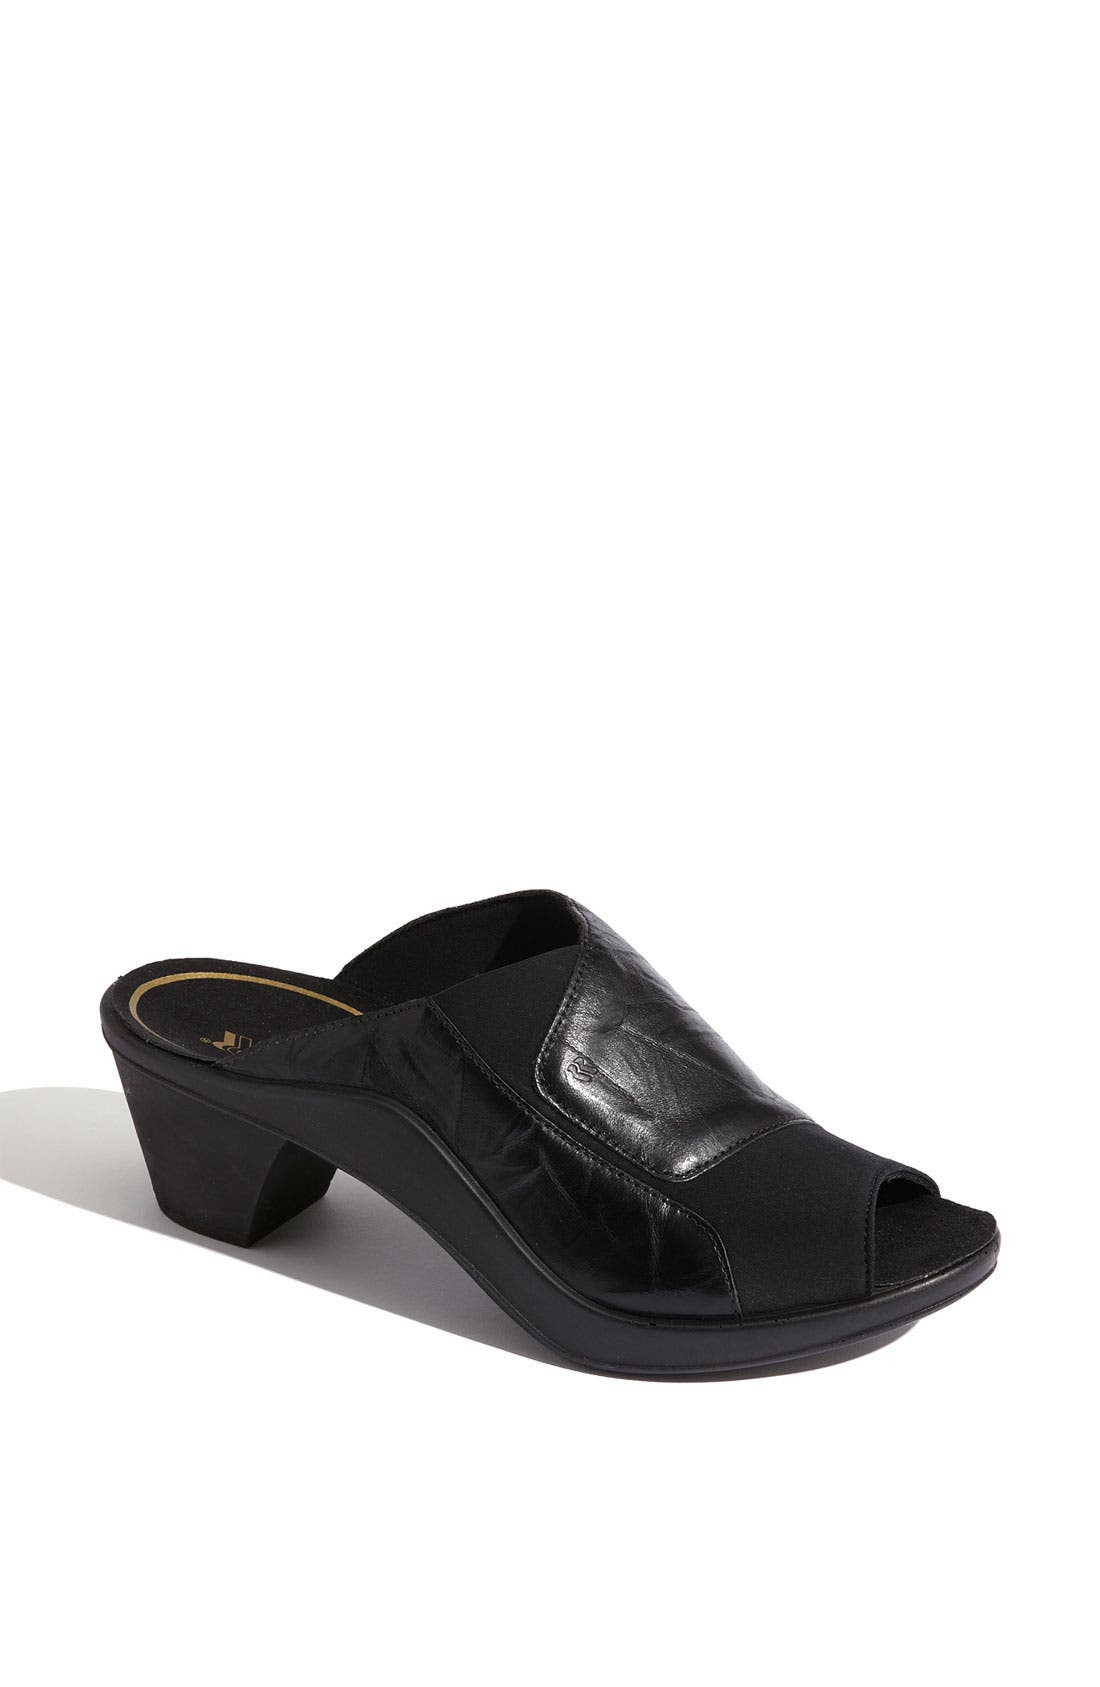 'Mokasetta' Mule,                         Main,                         color, Black